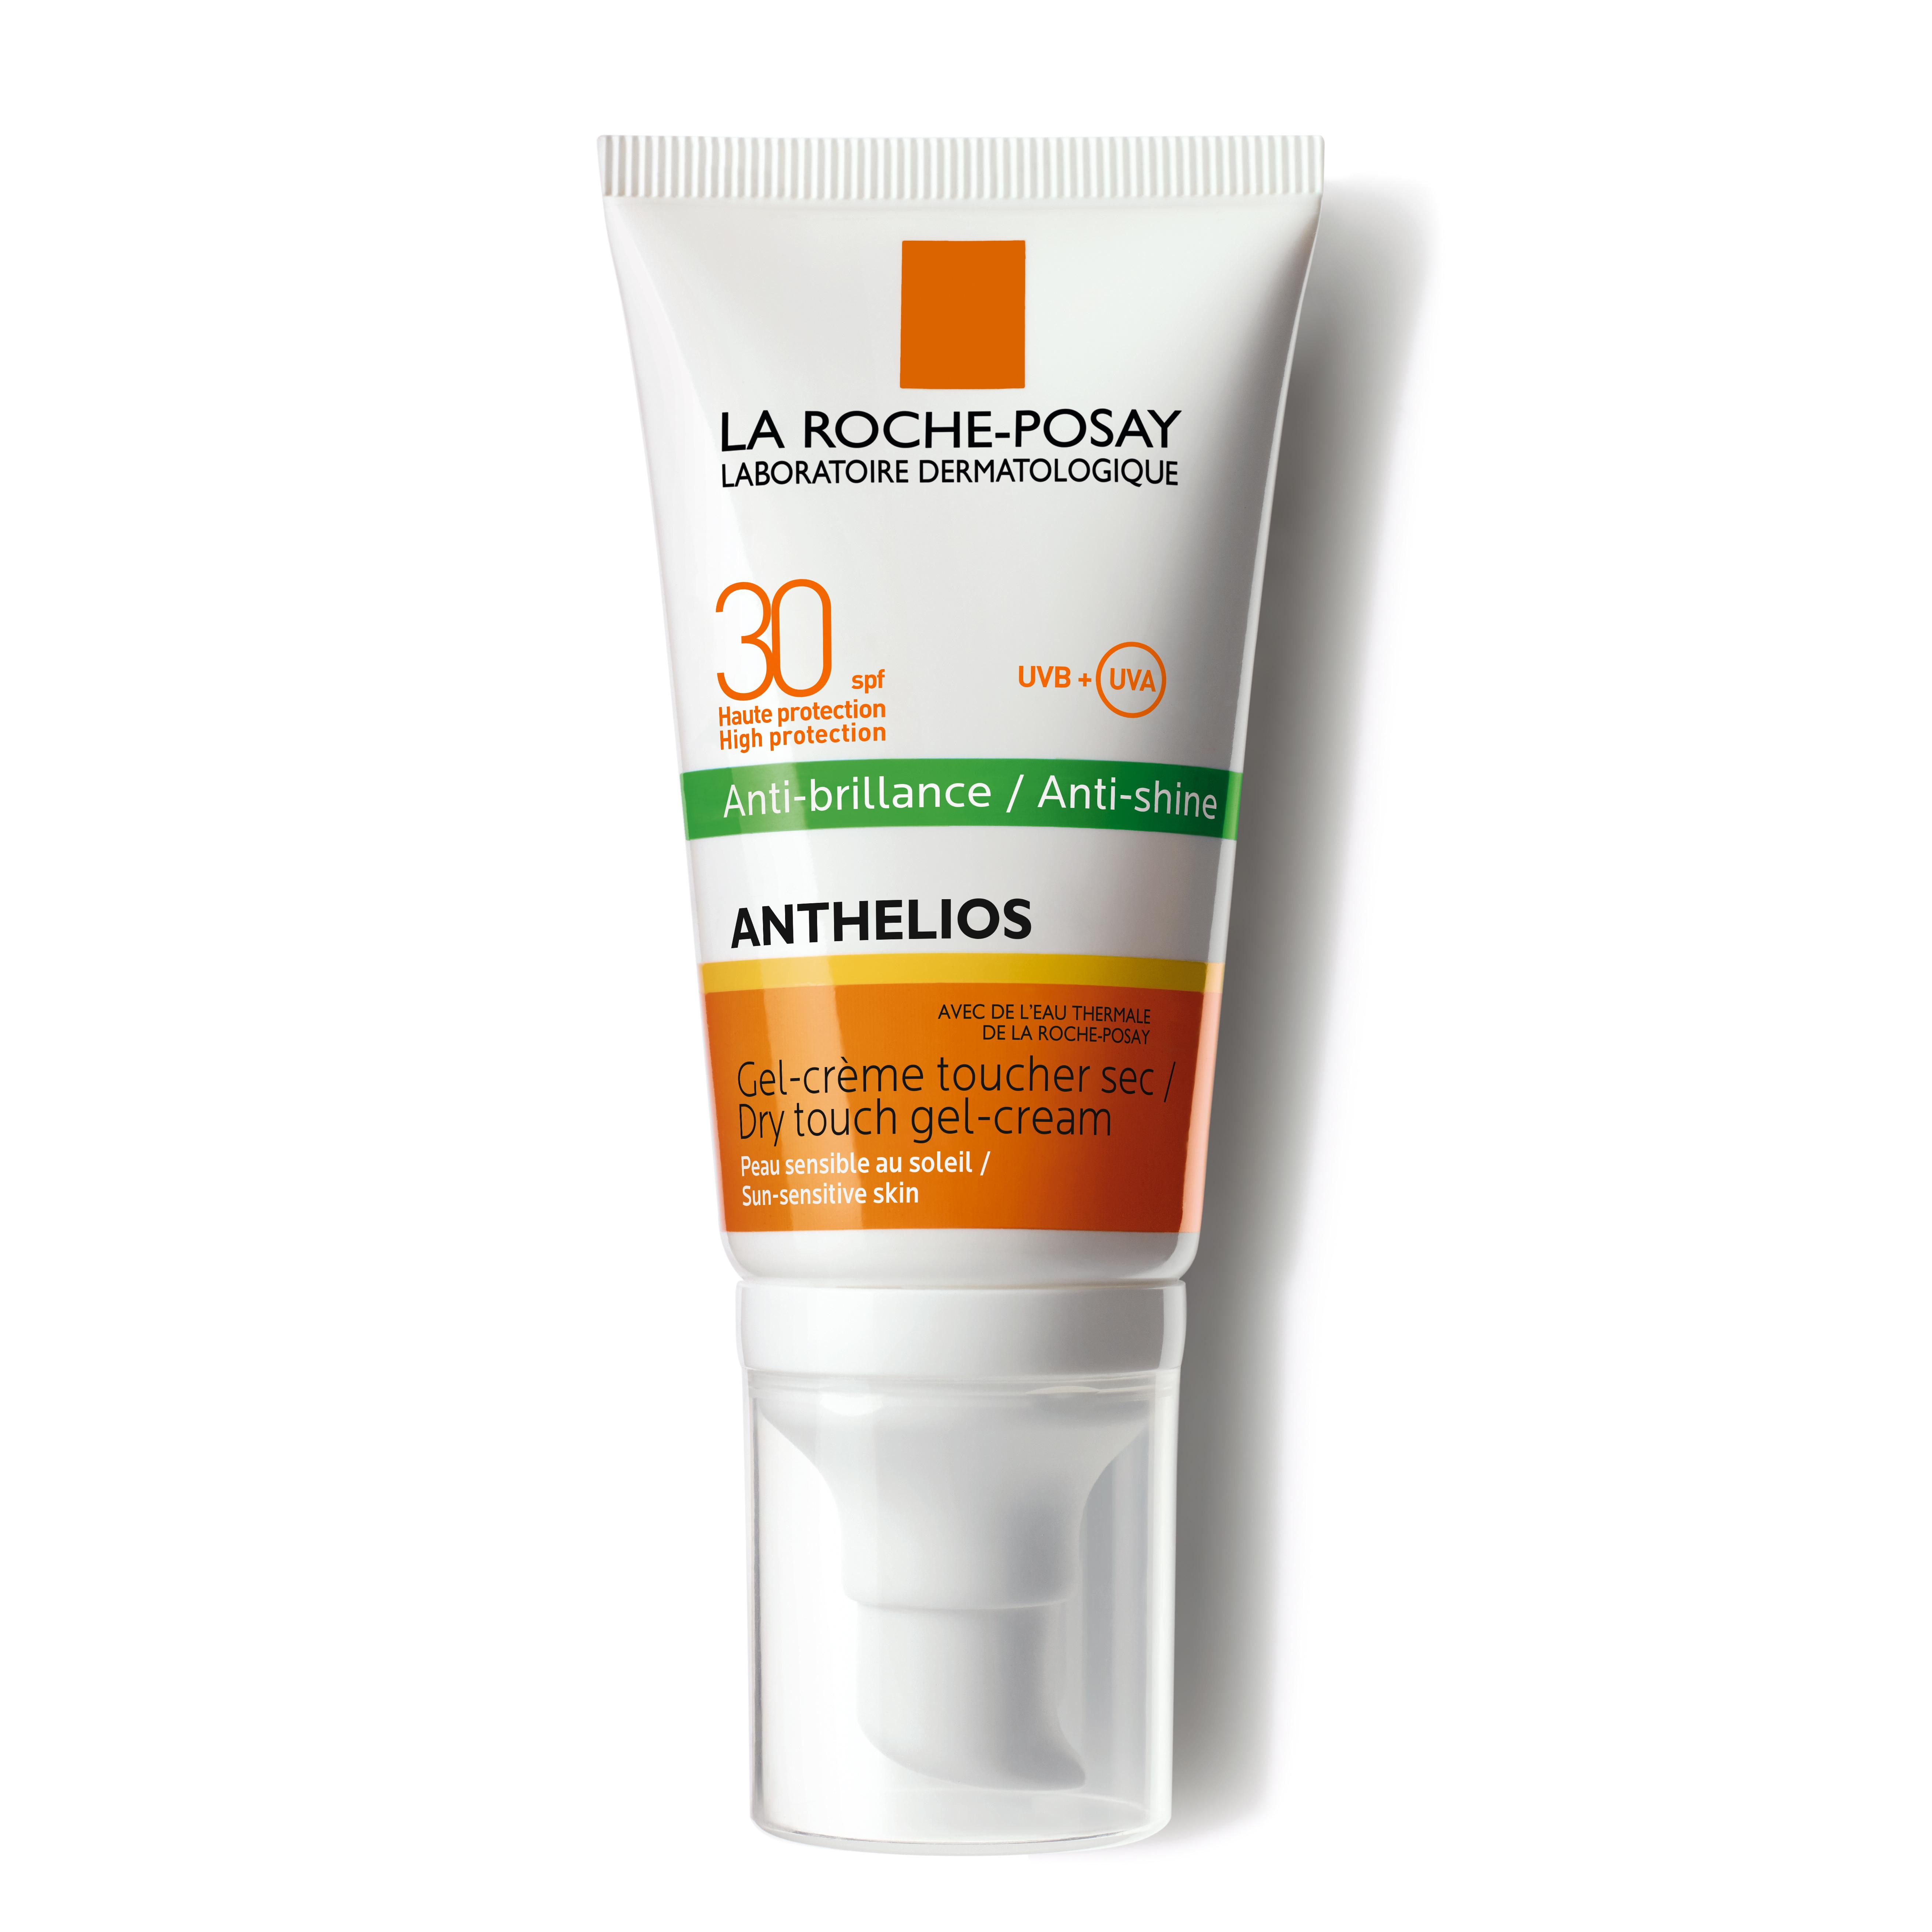 Image of La Roche-Posay Anthelios Anti-shine Dry touch SPF30